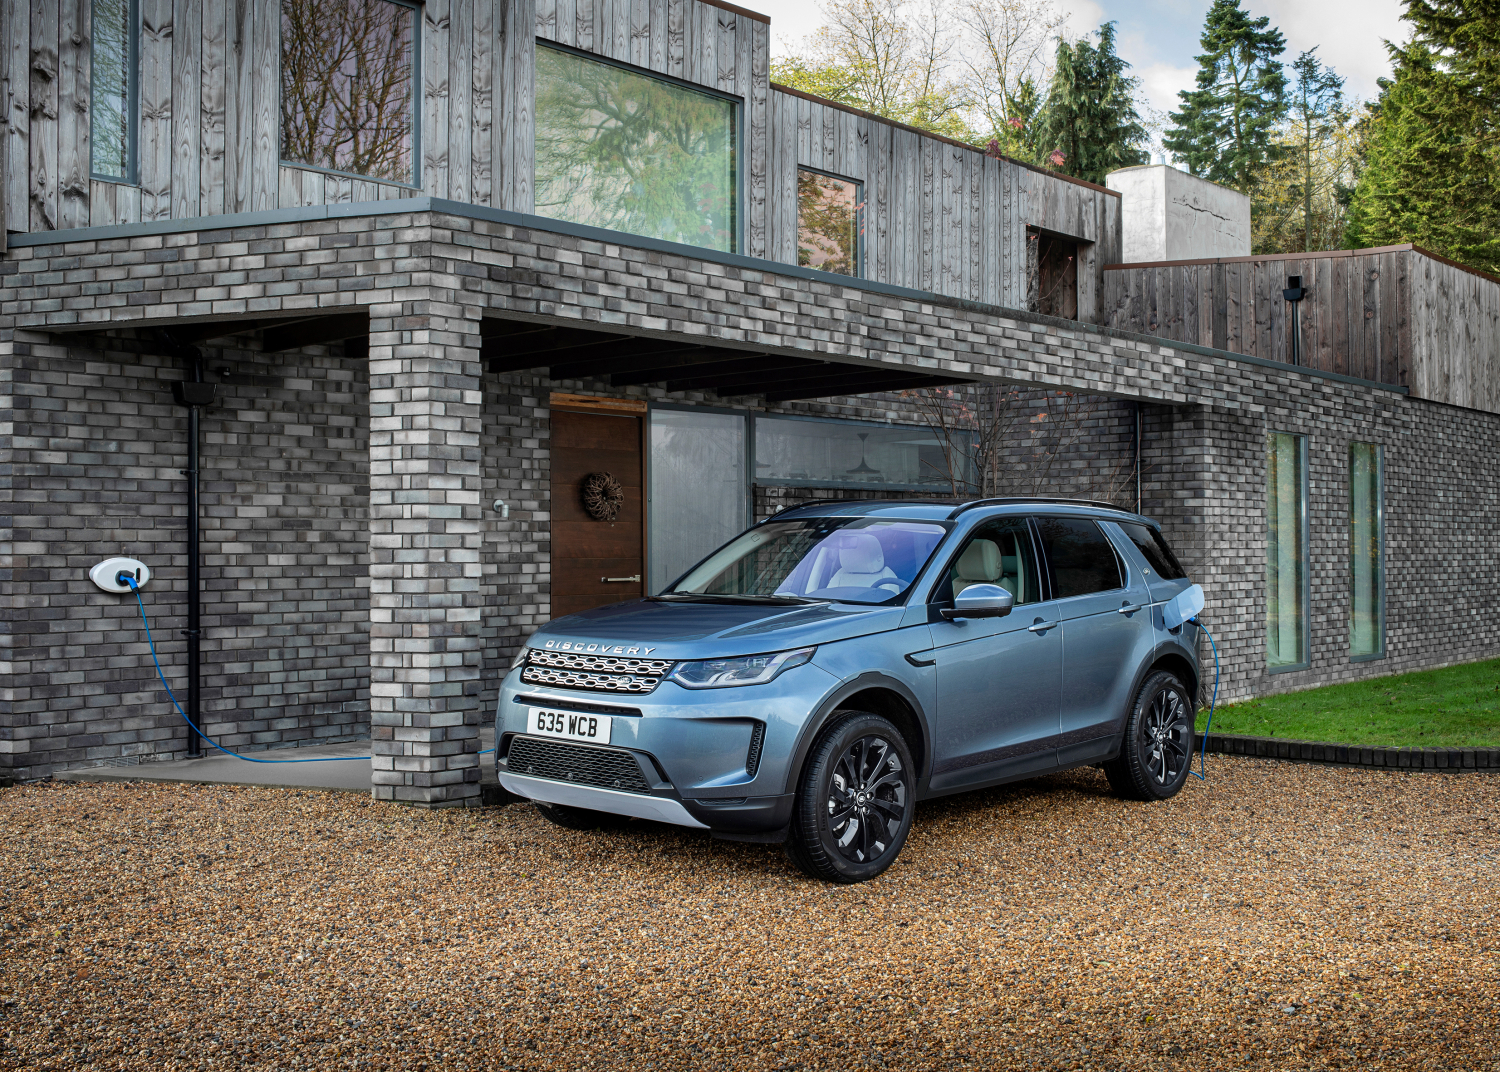 Bestselling Evoque and Discovery Sport Suvs now Available as Plug-in Hybrids with All-electric Range of up to 66km - Image 1